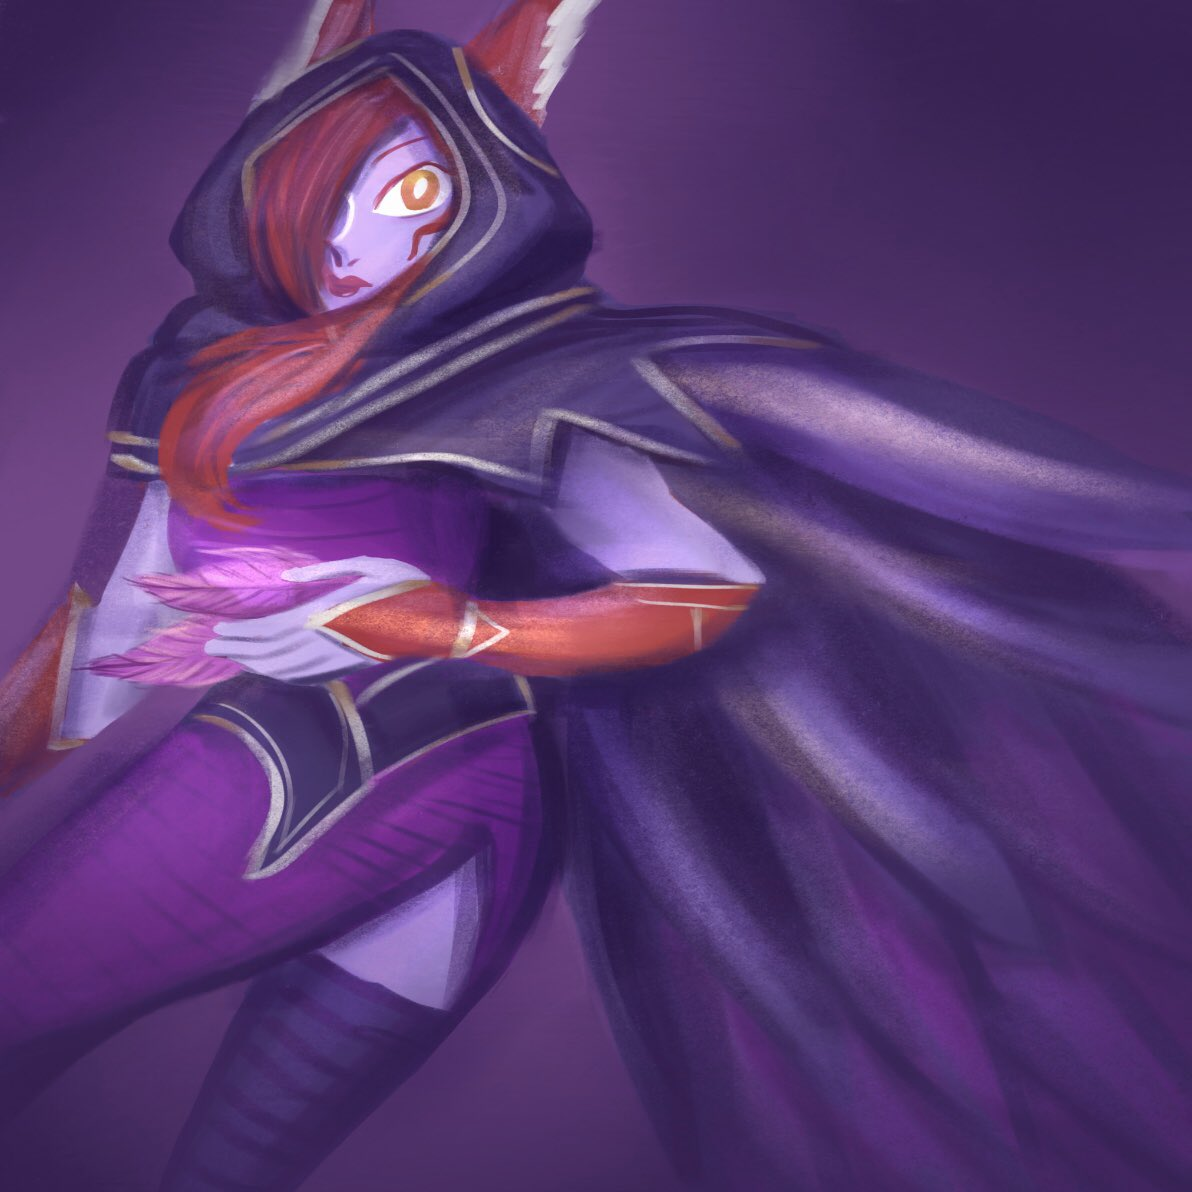 [Fanart] Xayah from League of Legends